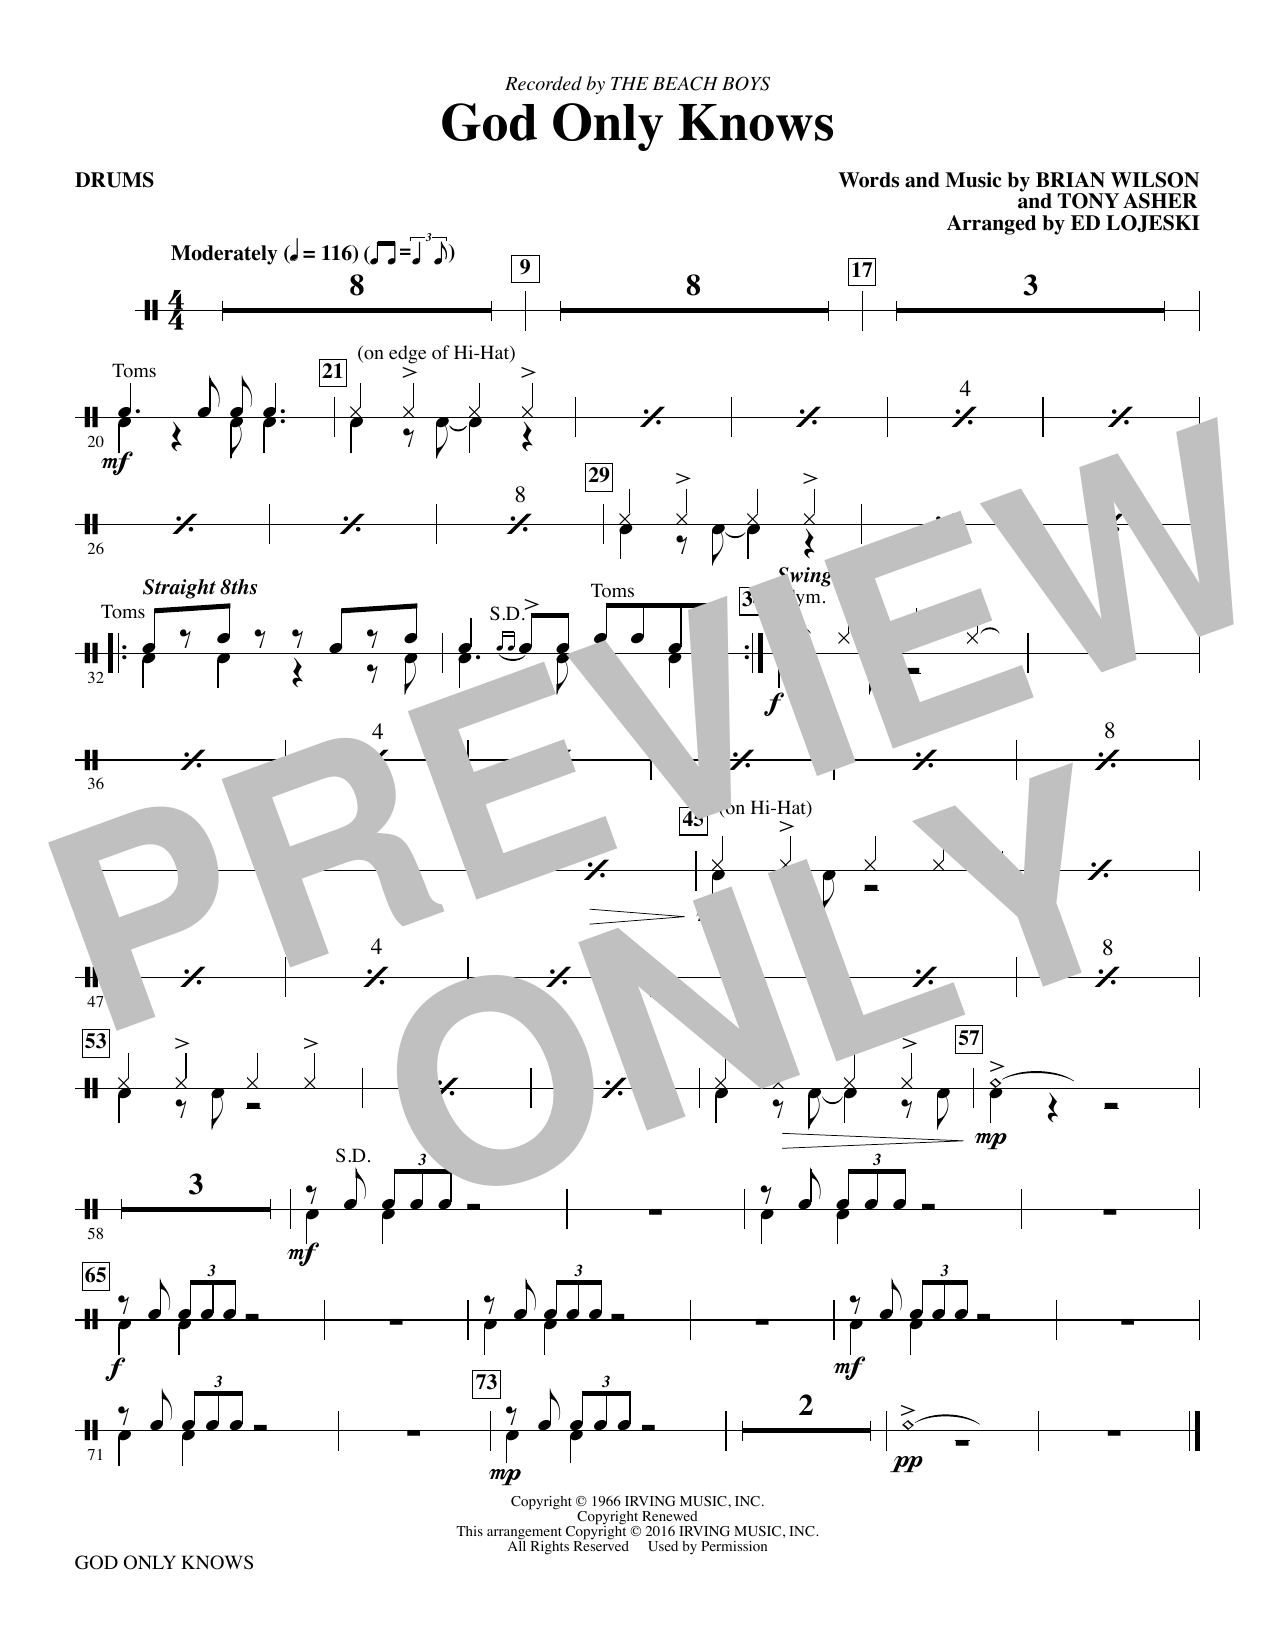 God Only Knows - Drums sheet music